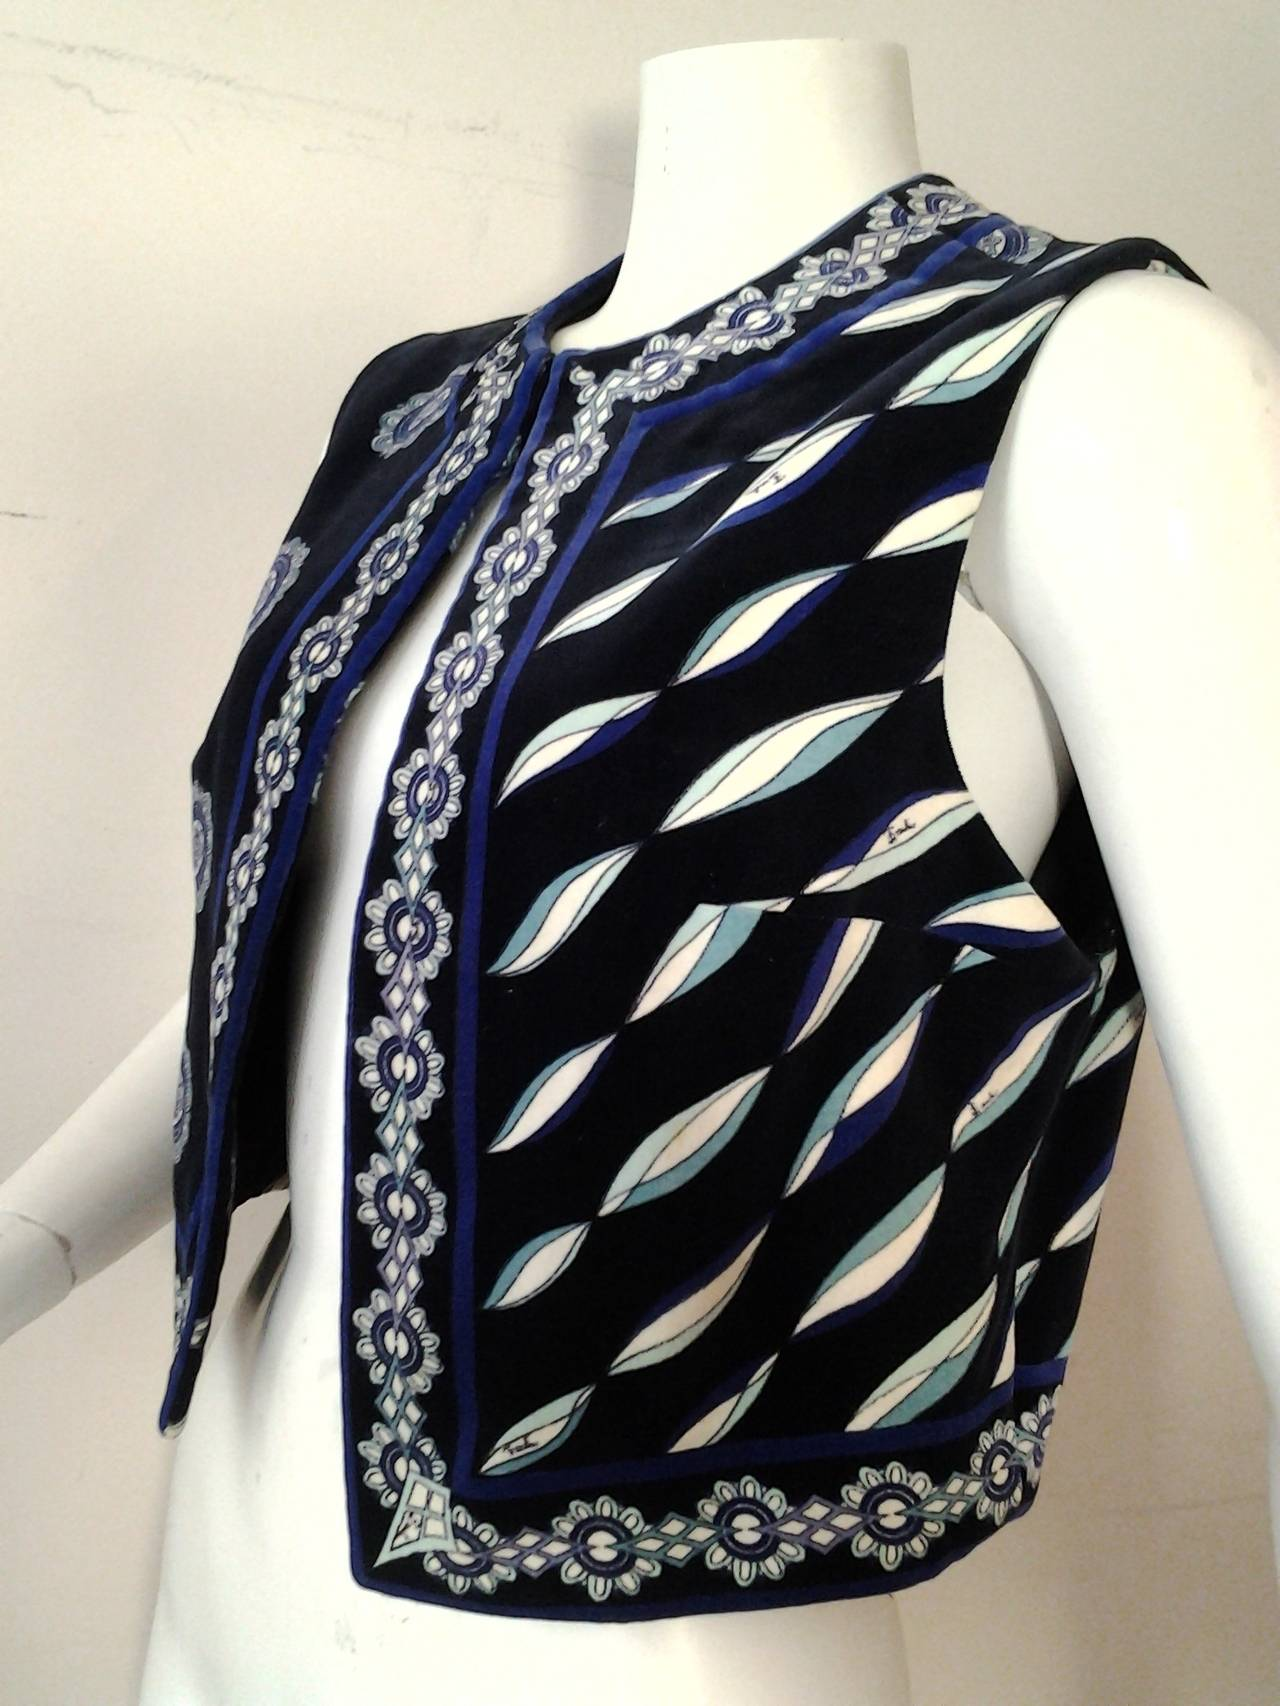 1960s Emilio Pucci Cotton Velveteen Mod Vest In Blues, Black and White 5